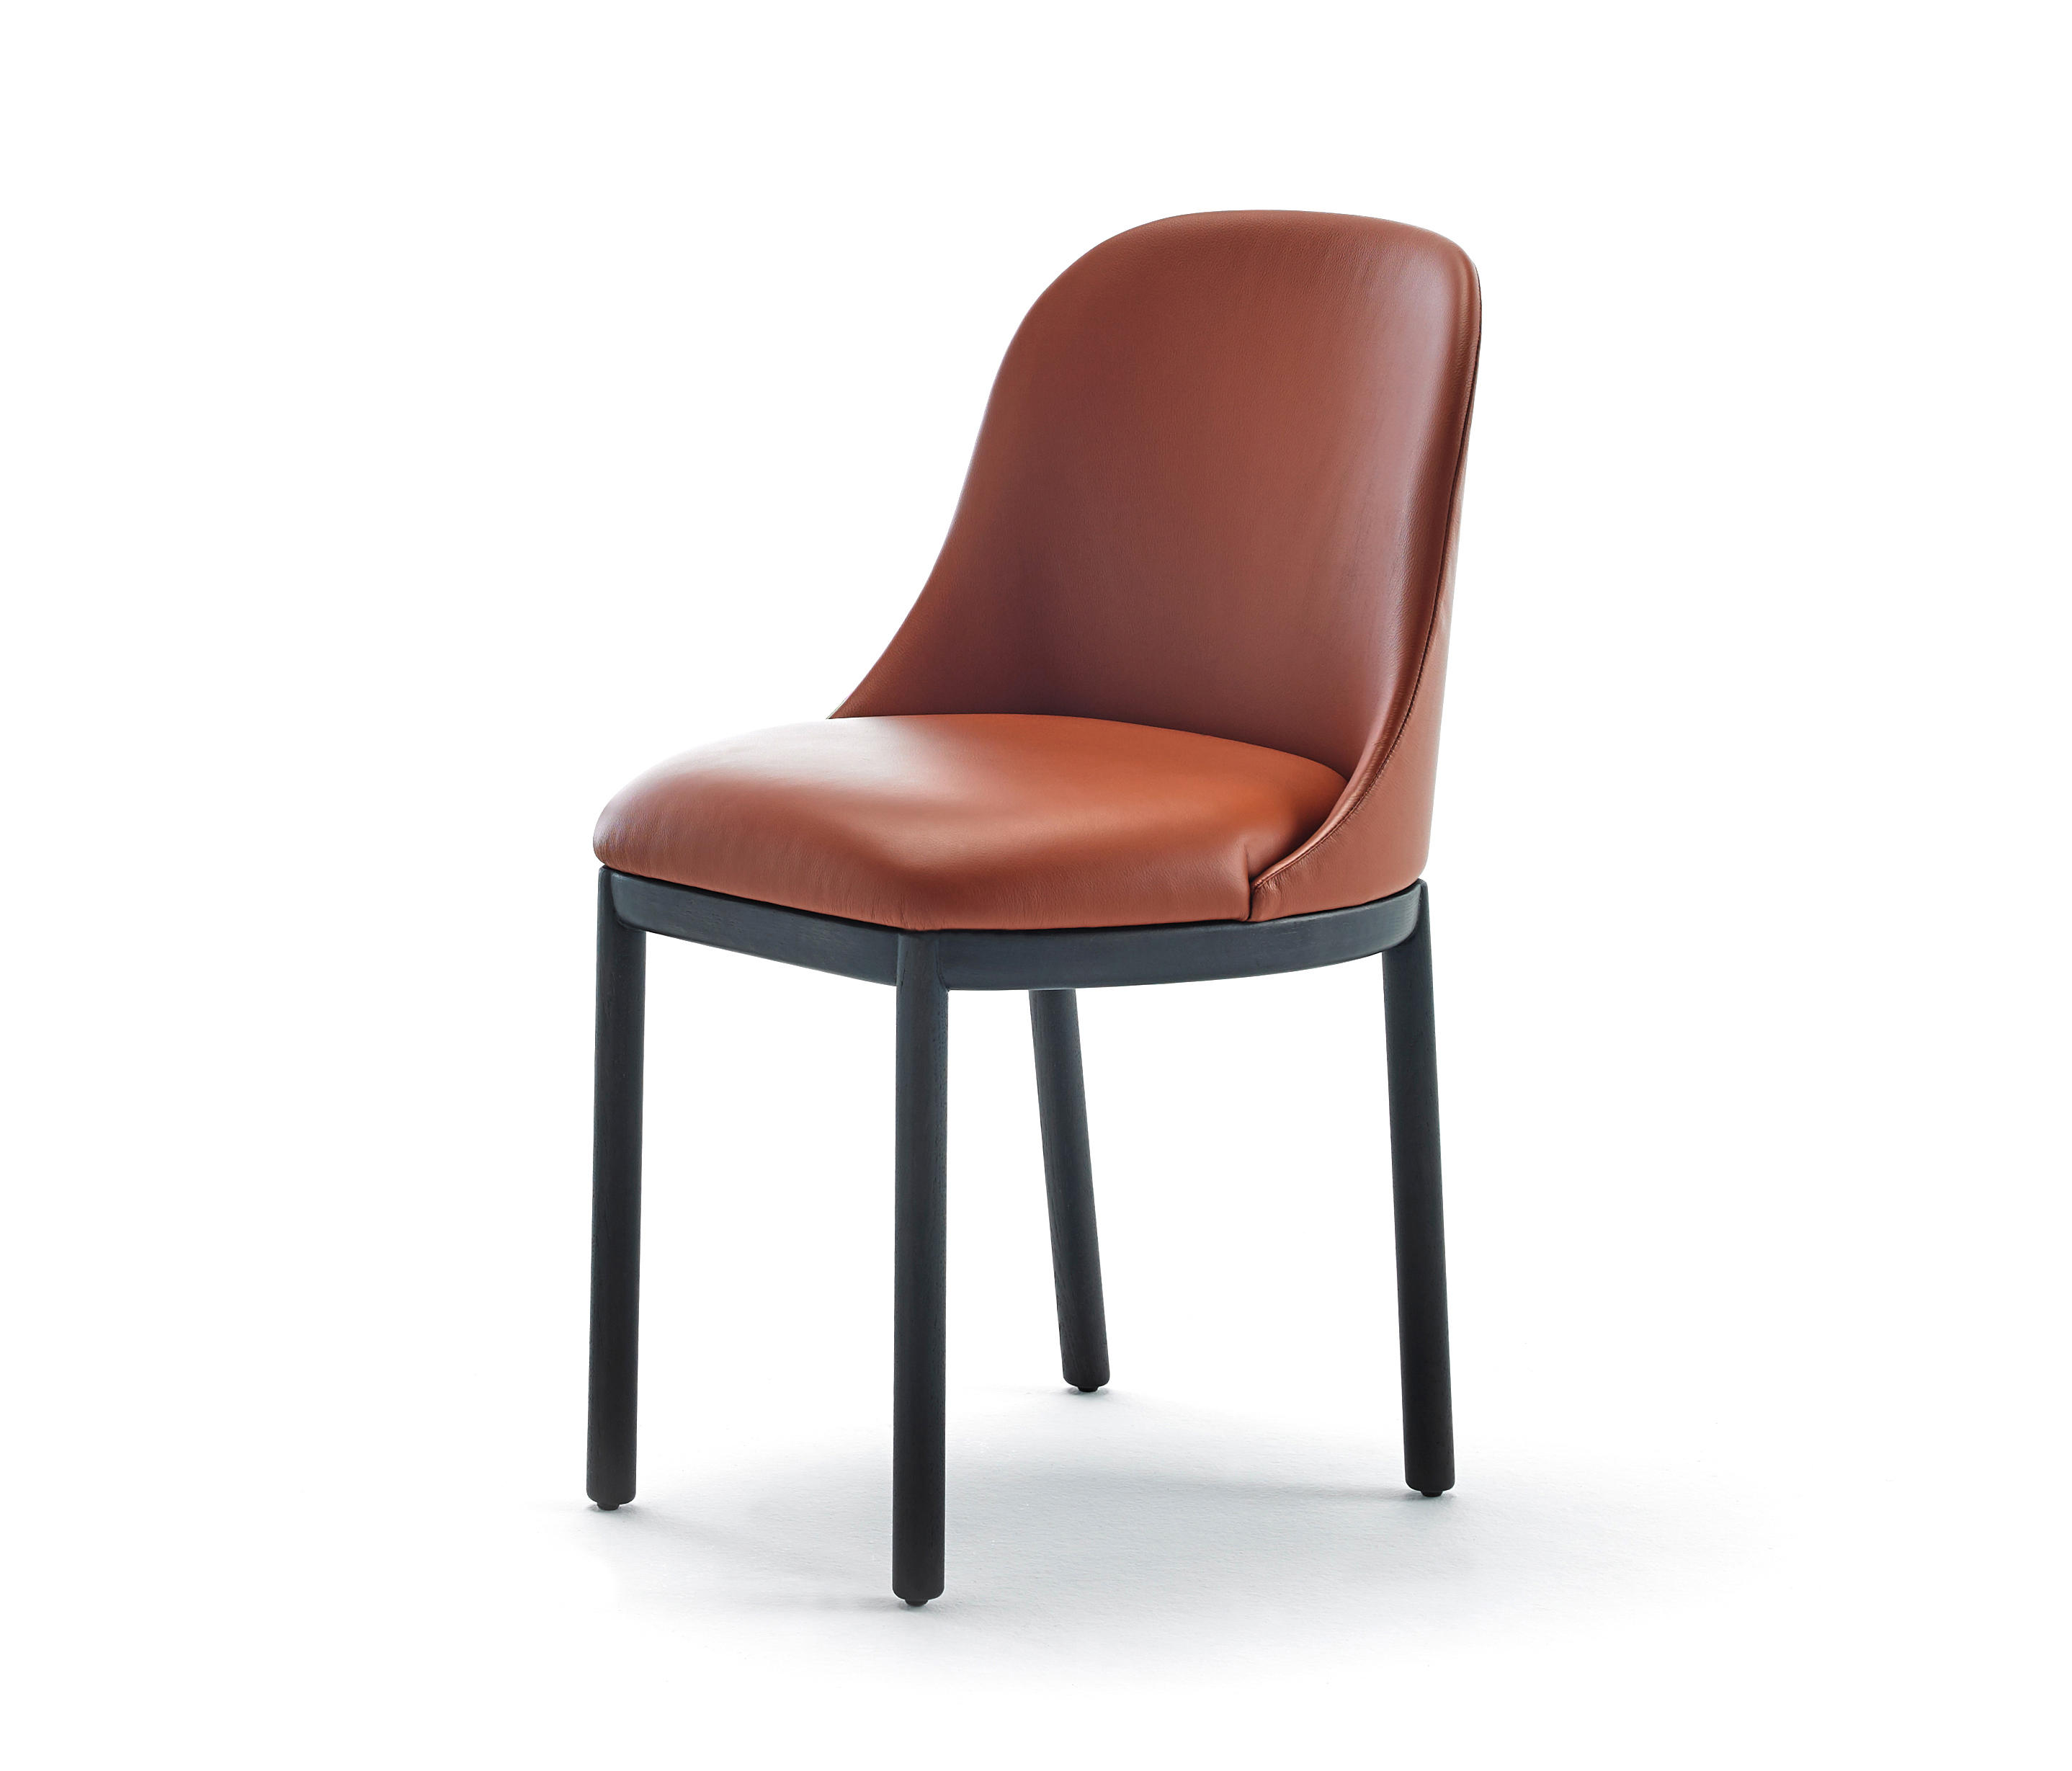 Wood Base Chairs ~ Aleta chair wooden base chairs from viccarbe architonic